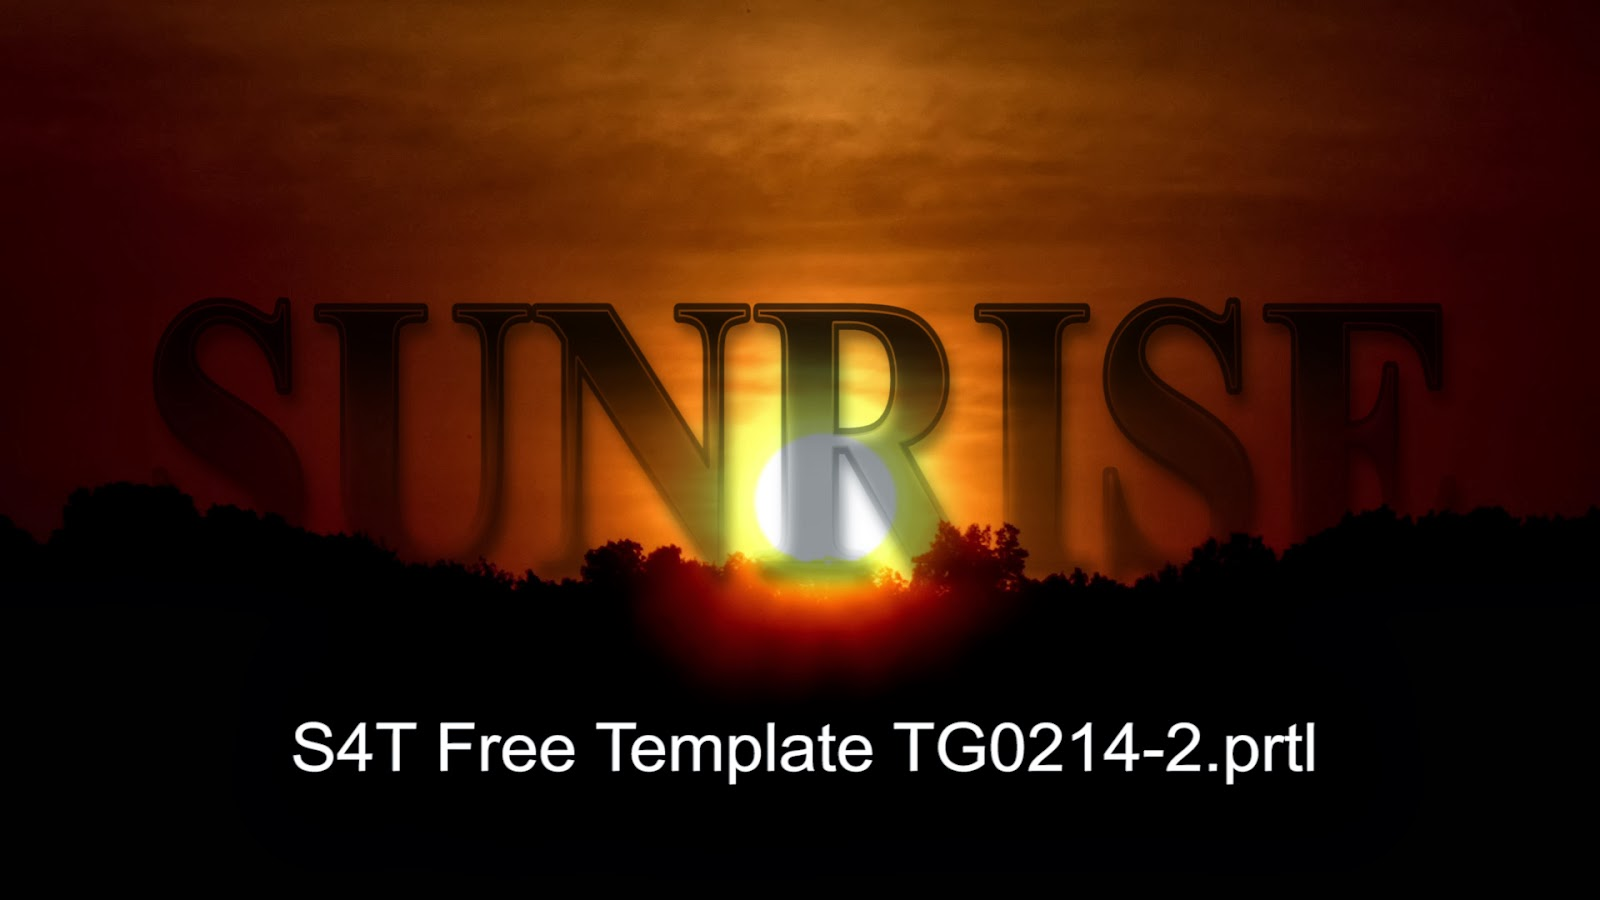 free premiere pro templates - style4type free s4t premiere pro title template with